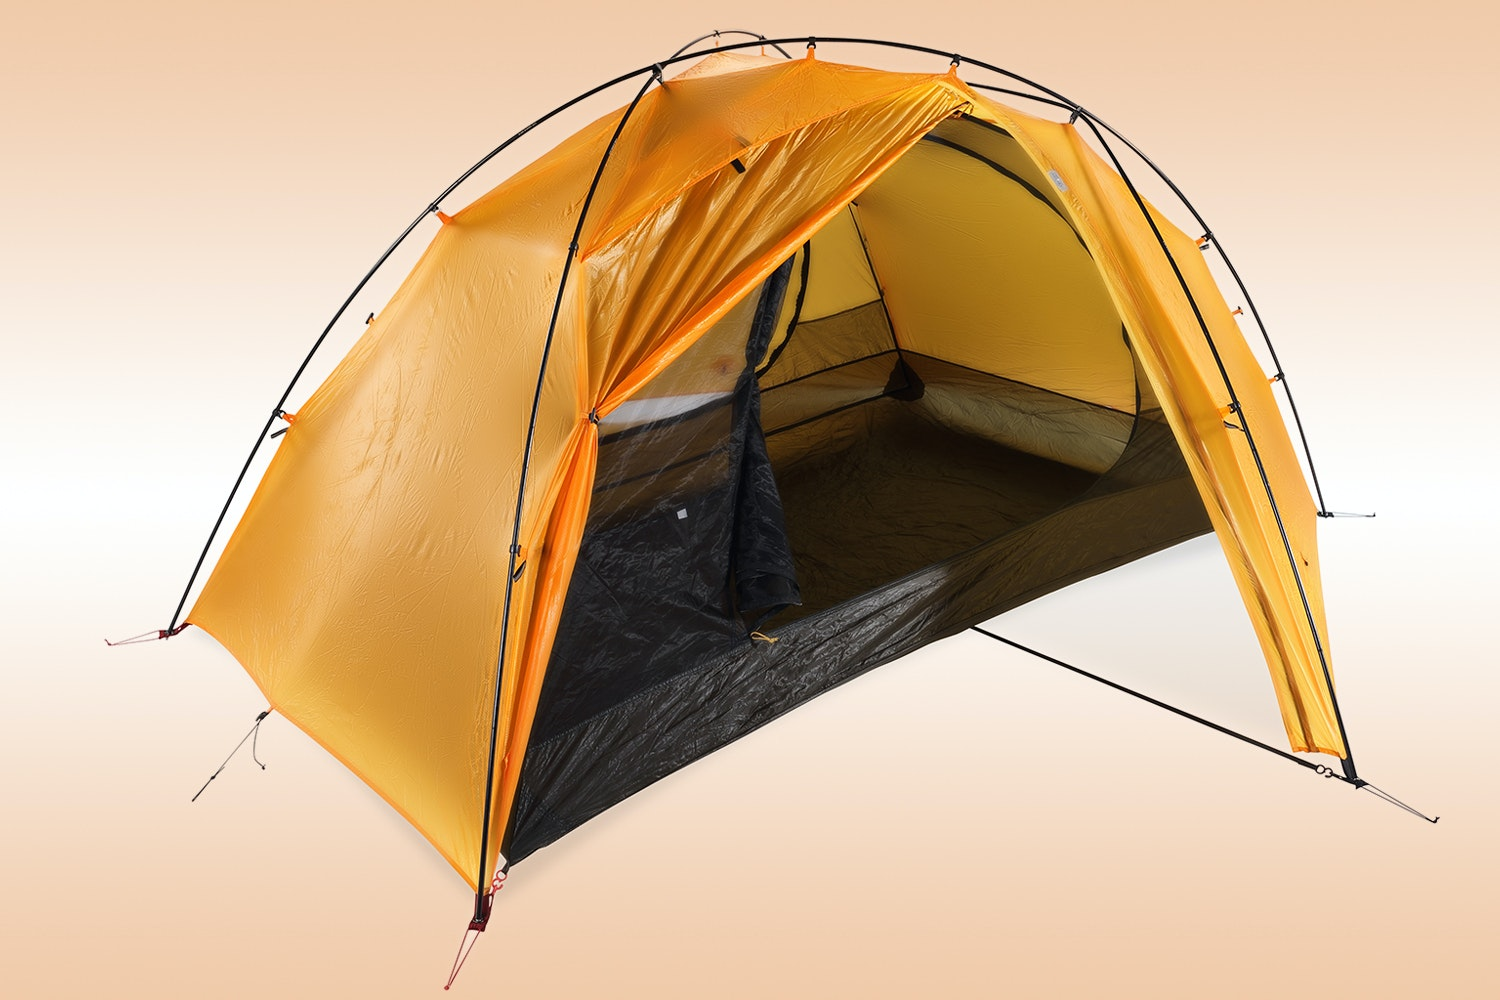 Big Sky Chinook 2P 4-Season Tent & Big Sky Chinook 2P 4-Season Tent | Price u0026 Reviews | Massdrop